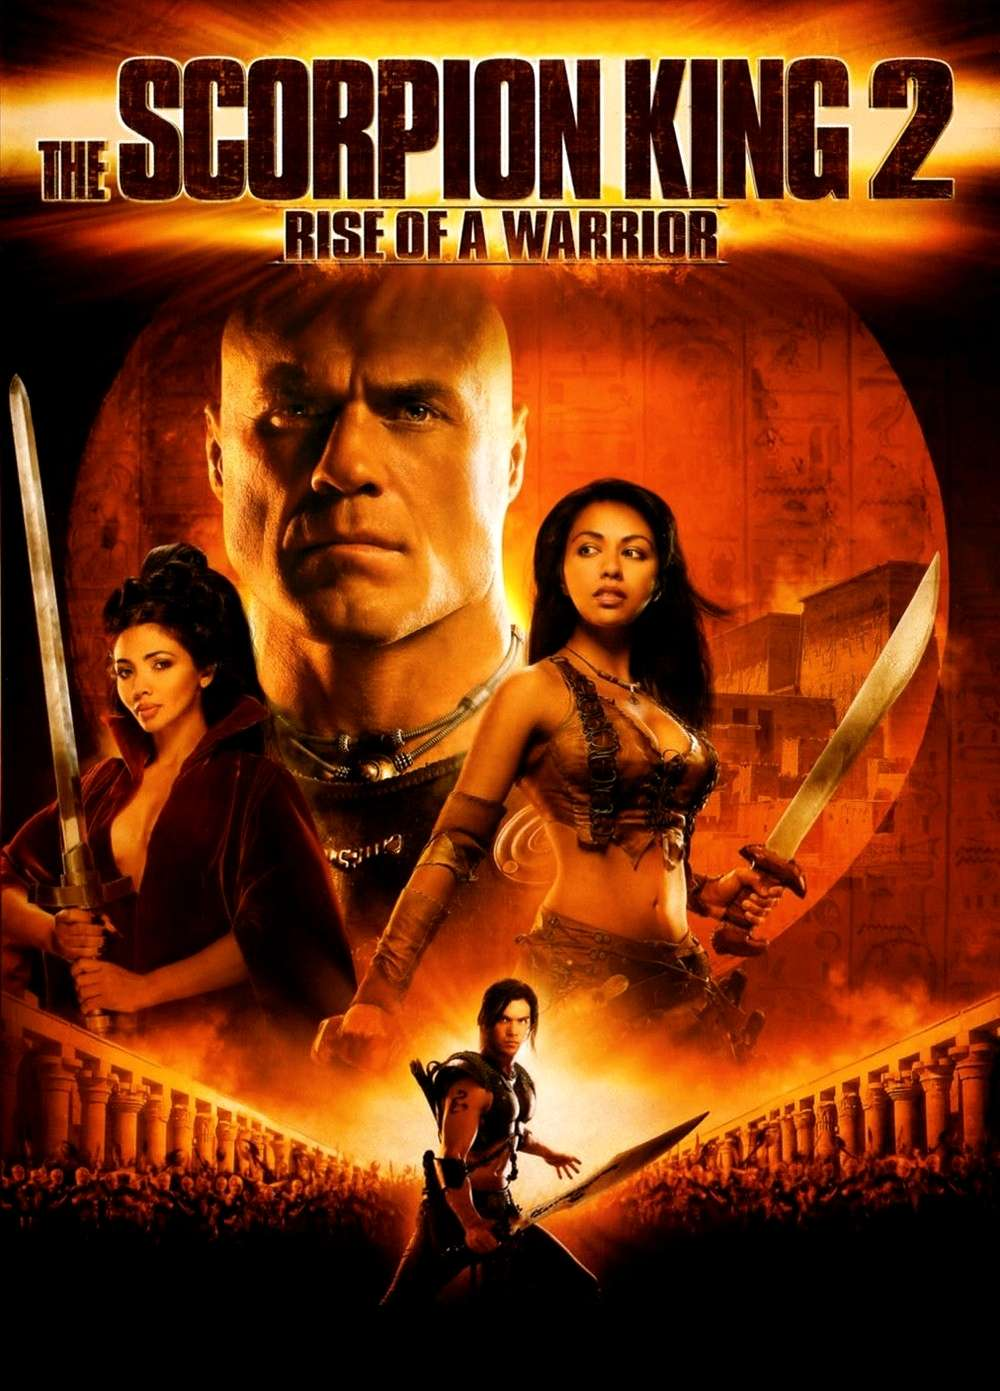 The Scorpion King 2: Rise of a Warrior kapak